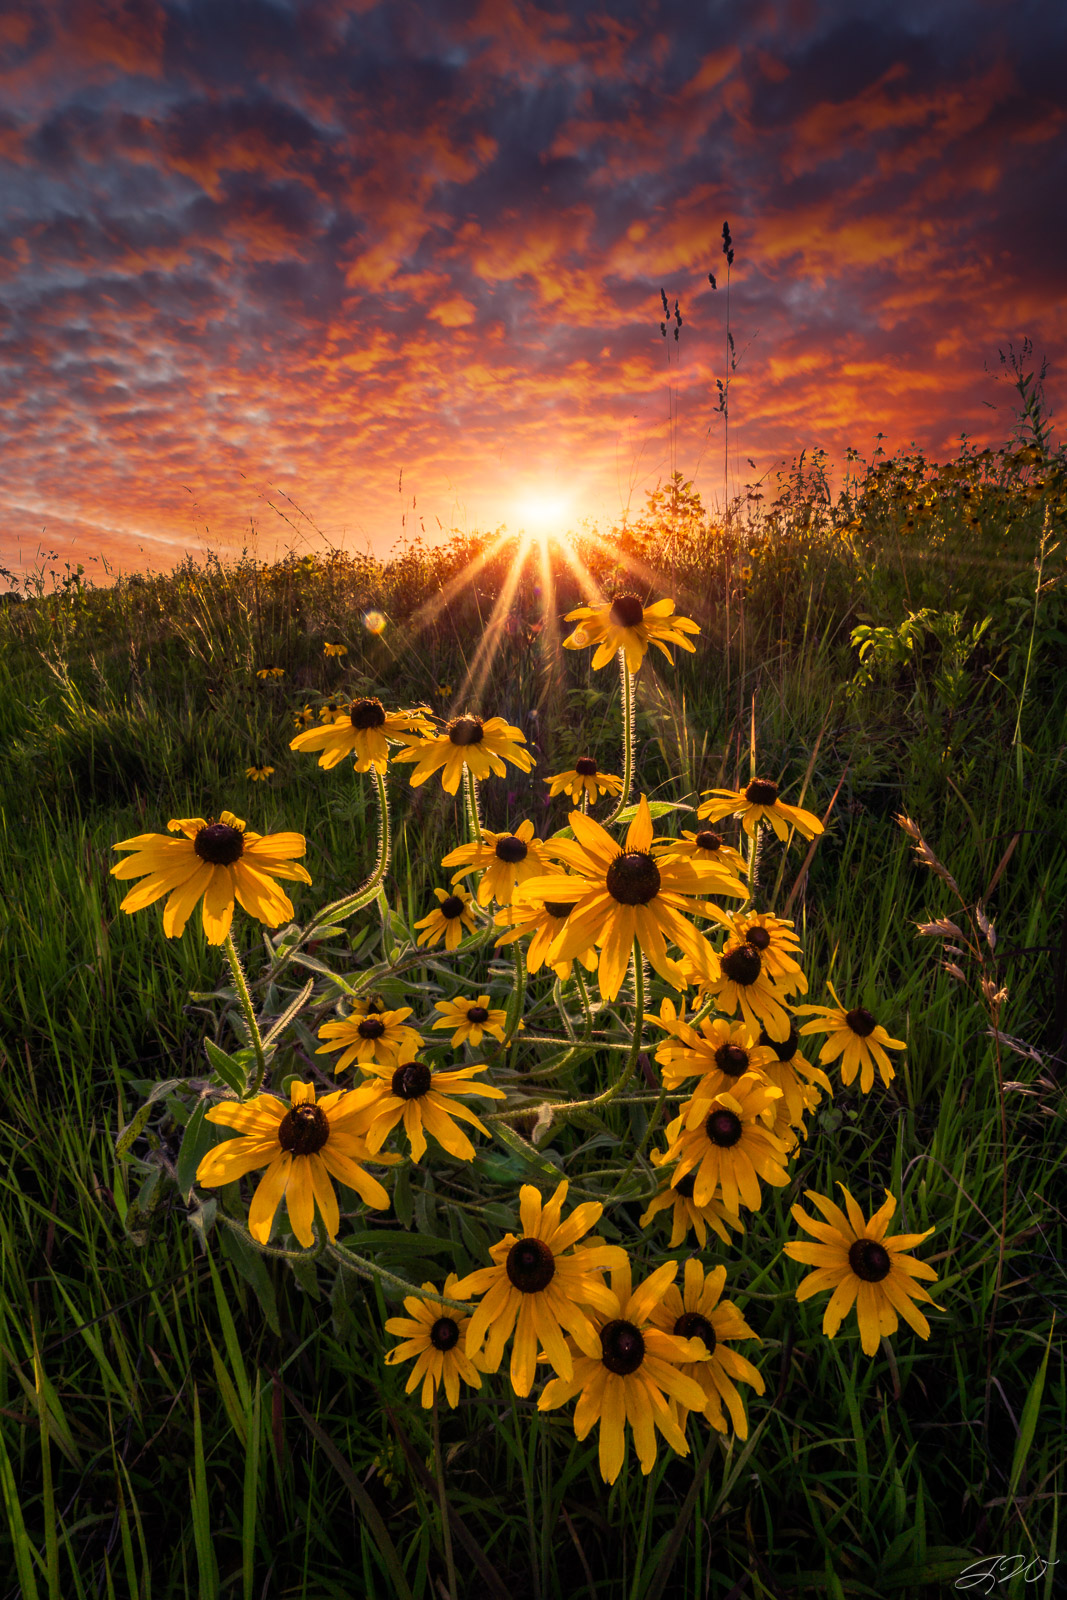 Black Eyed Susan, Clouds, Flowers, Landscape, Sunset, Sunstar, Wildflowers, Nature, Beauty, photo